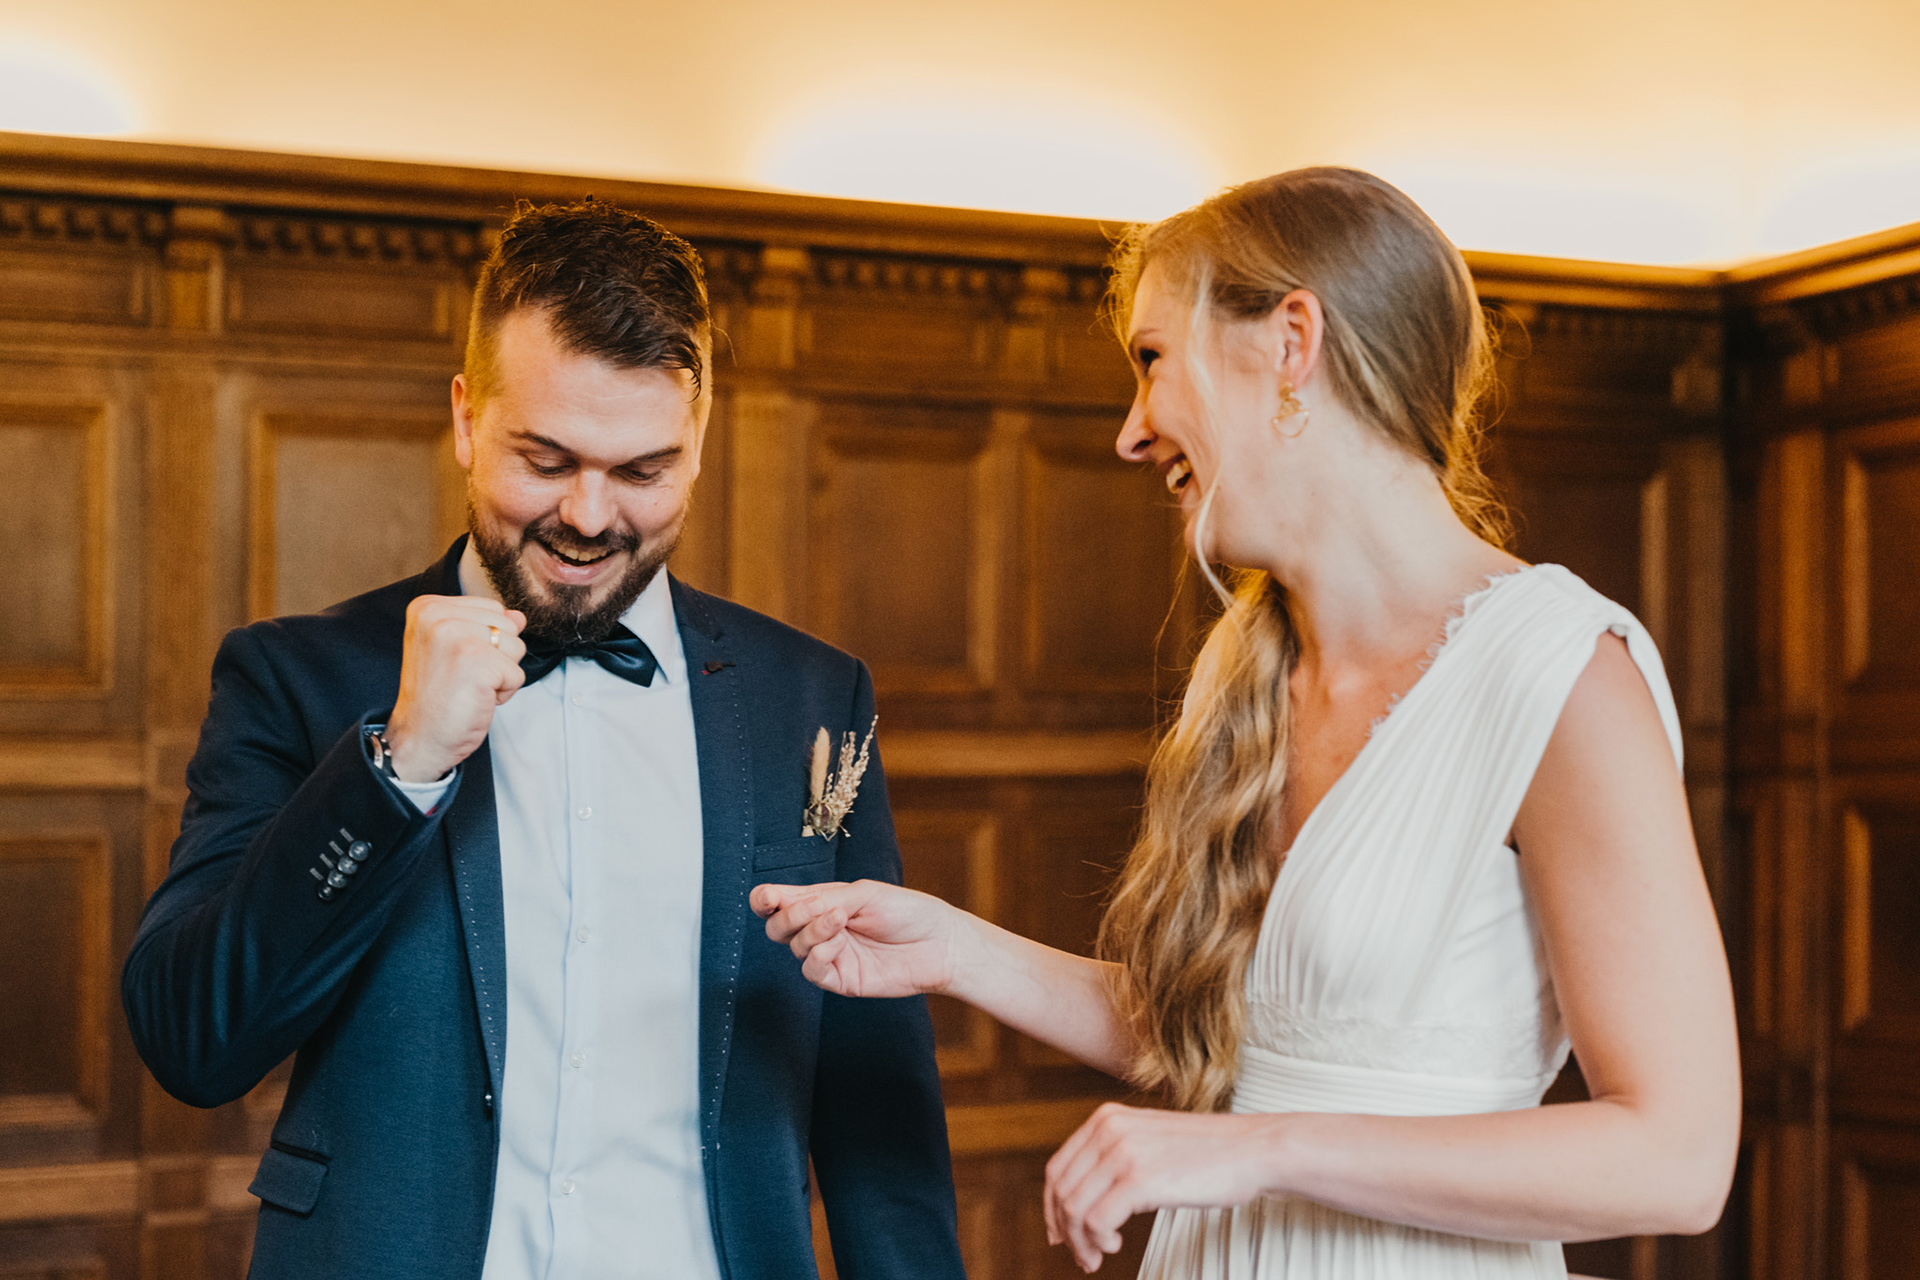 Düsseldorf Civil Registry Marriage North Rhine-Westphalia Image | The groom pumps his fist with excitement before the civil ceremony